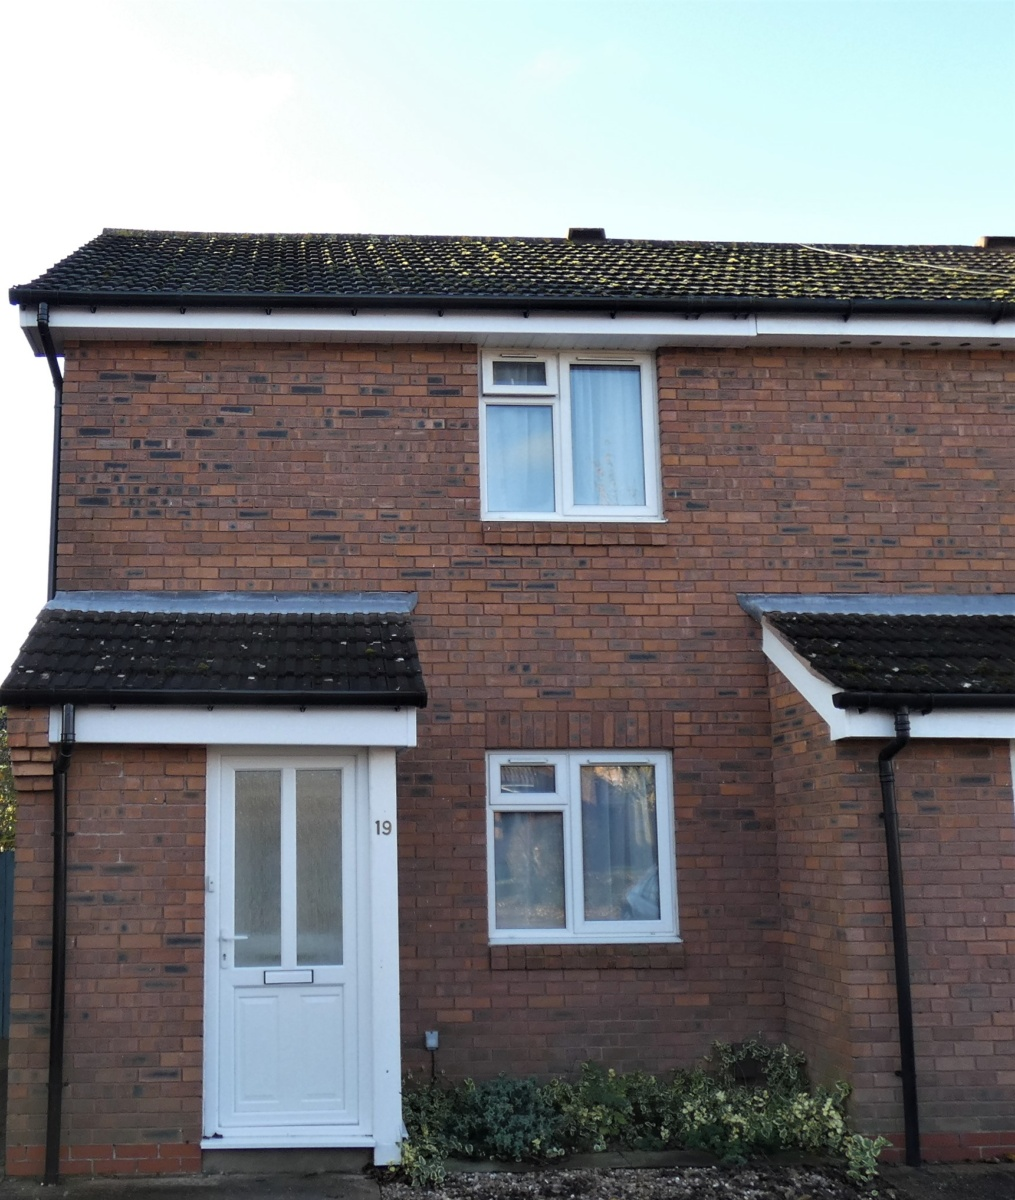 2 bed house to let stratford-upon-avon